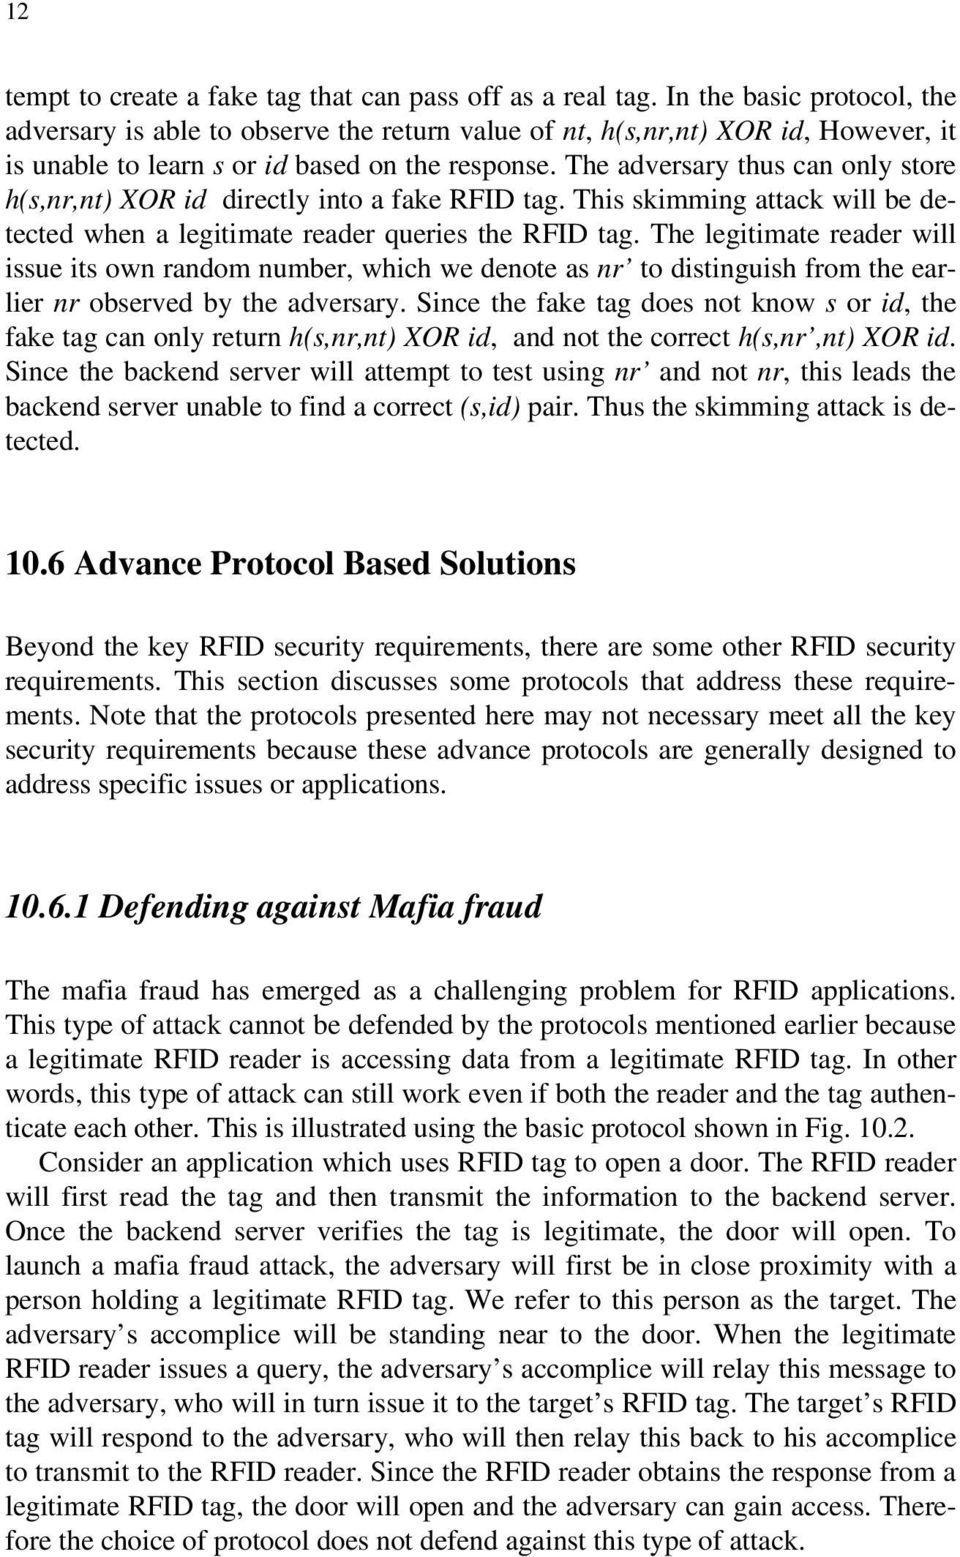 The adversary thus can only store h(s,nr,nt) XOR id directly into a fake RFID tag. This skimming attack will be detected when a legitimate reader queries the RFID tag.